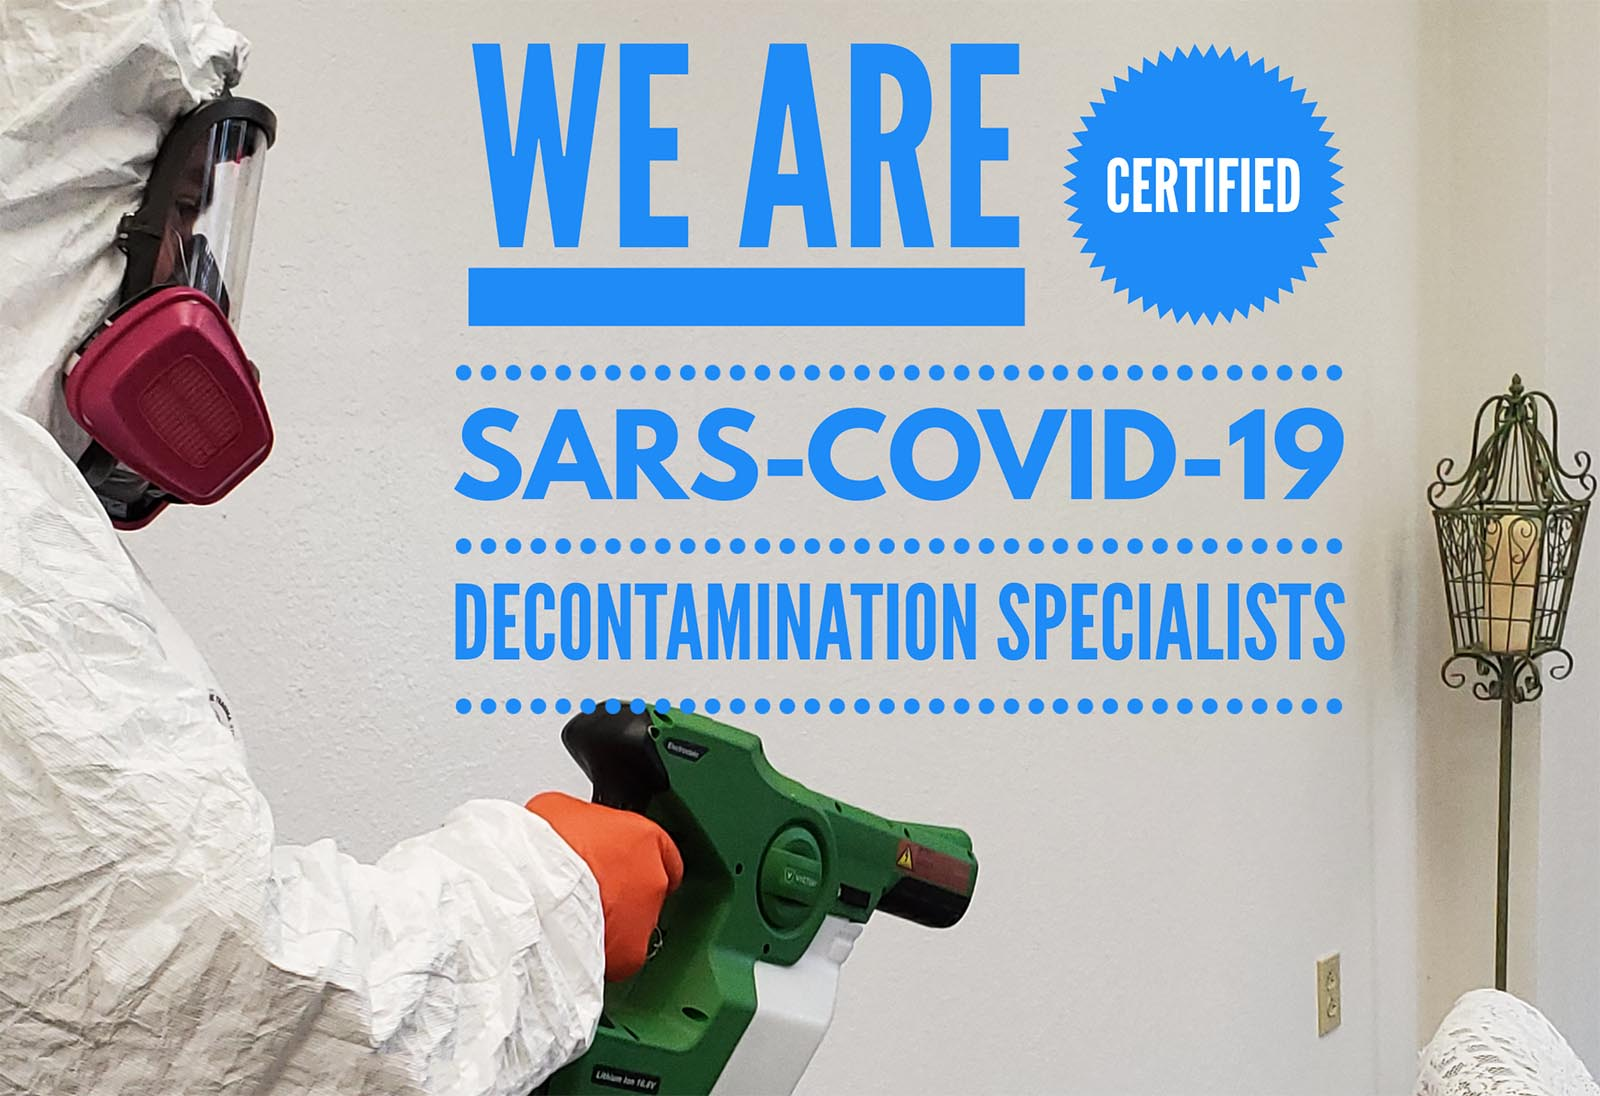 Certified COVID-19 Decontamination Specialists